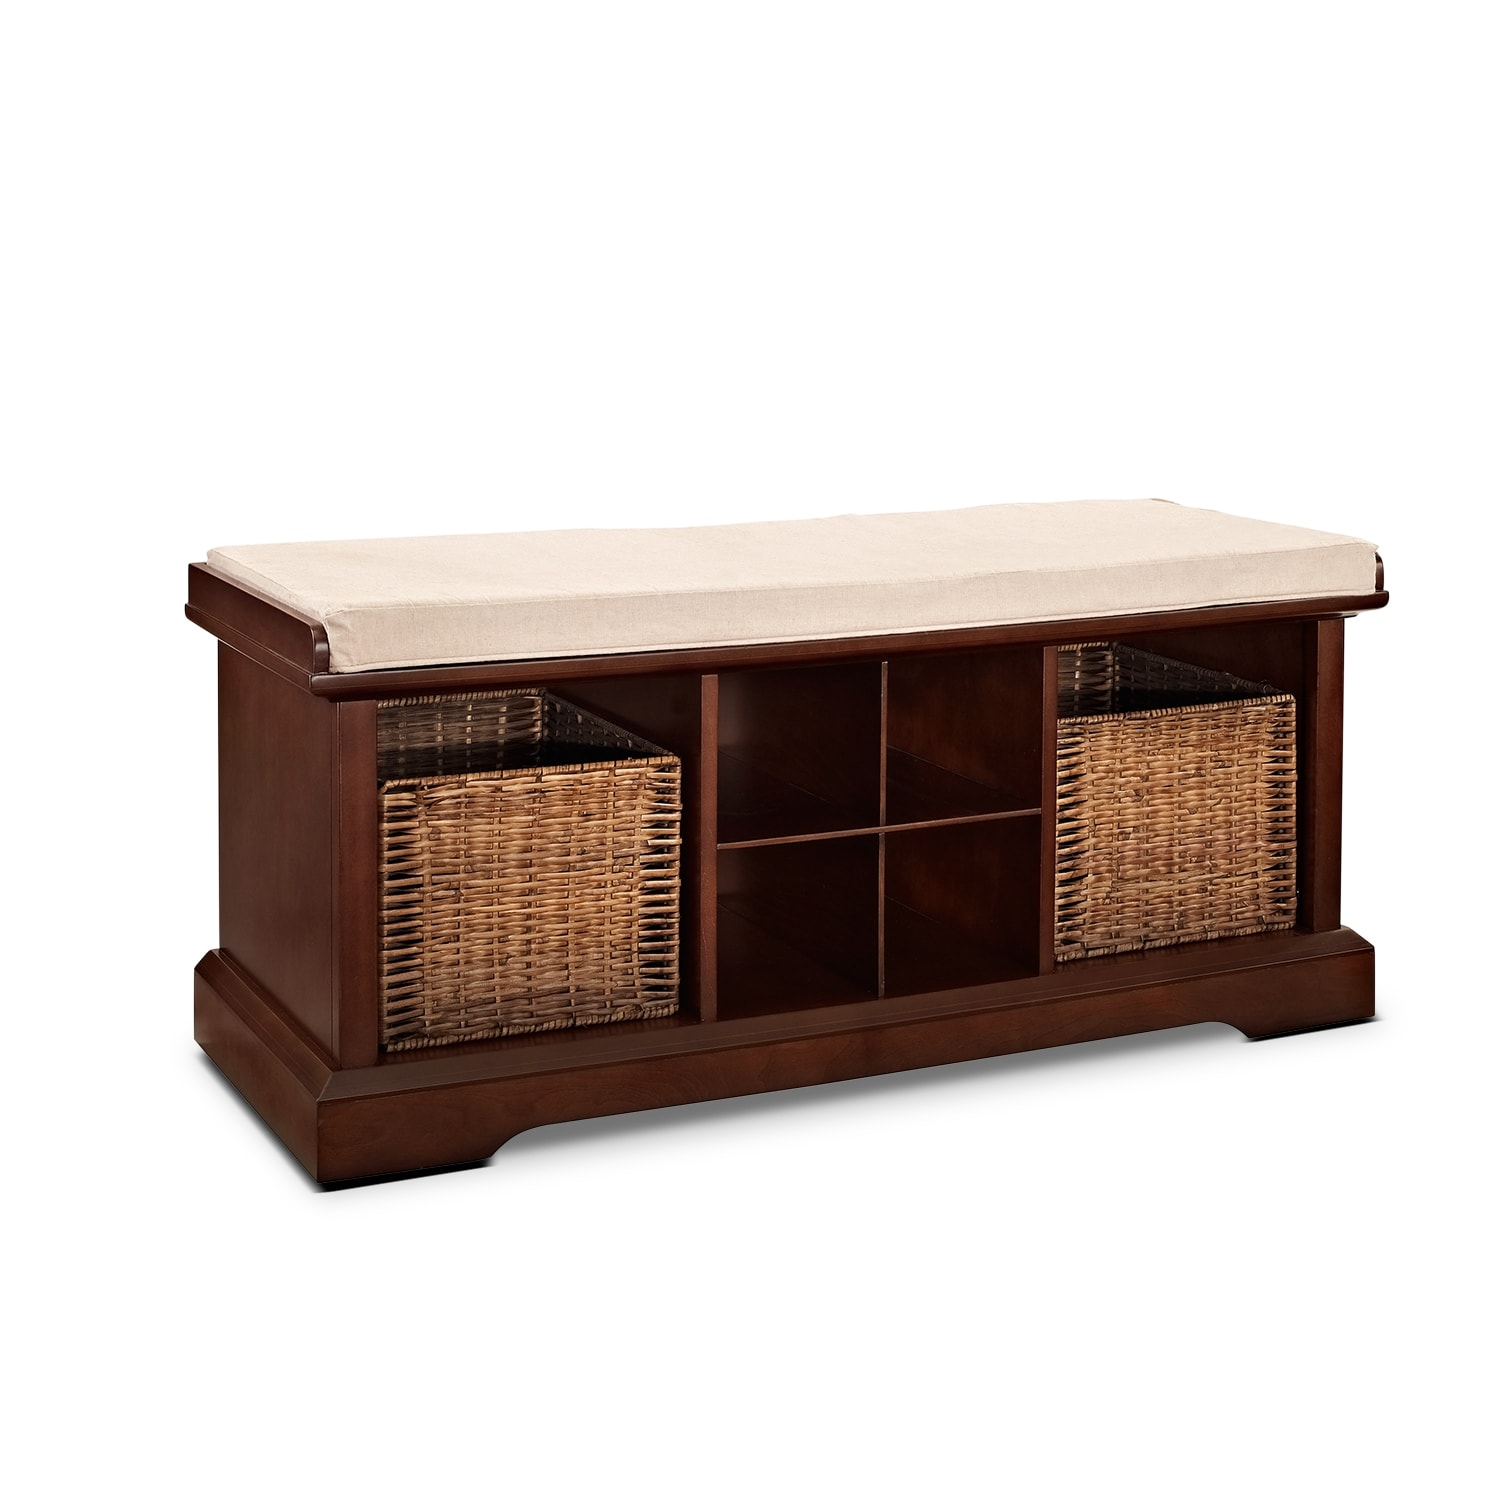 Levi Mahogany Entryway Storage Bench